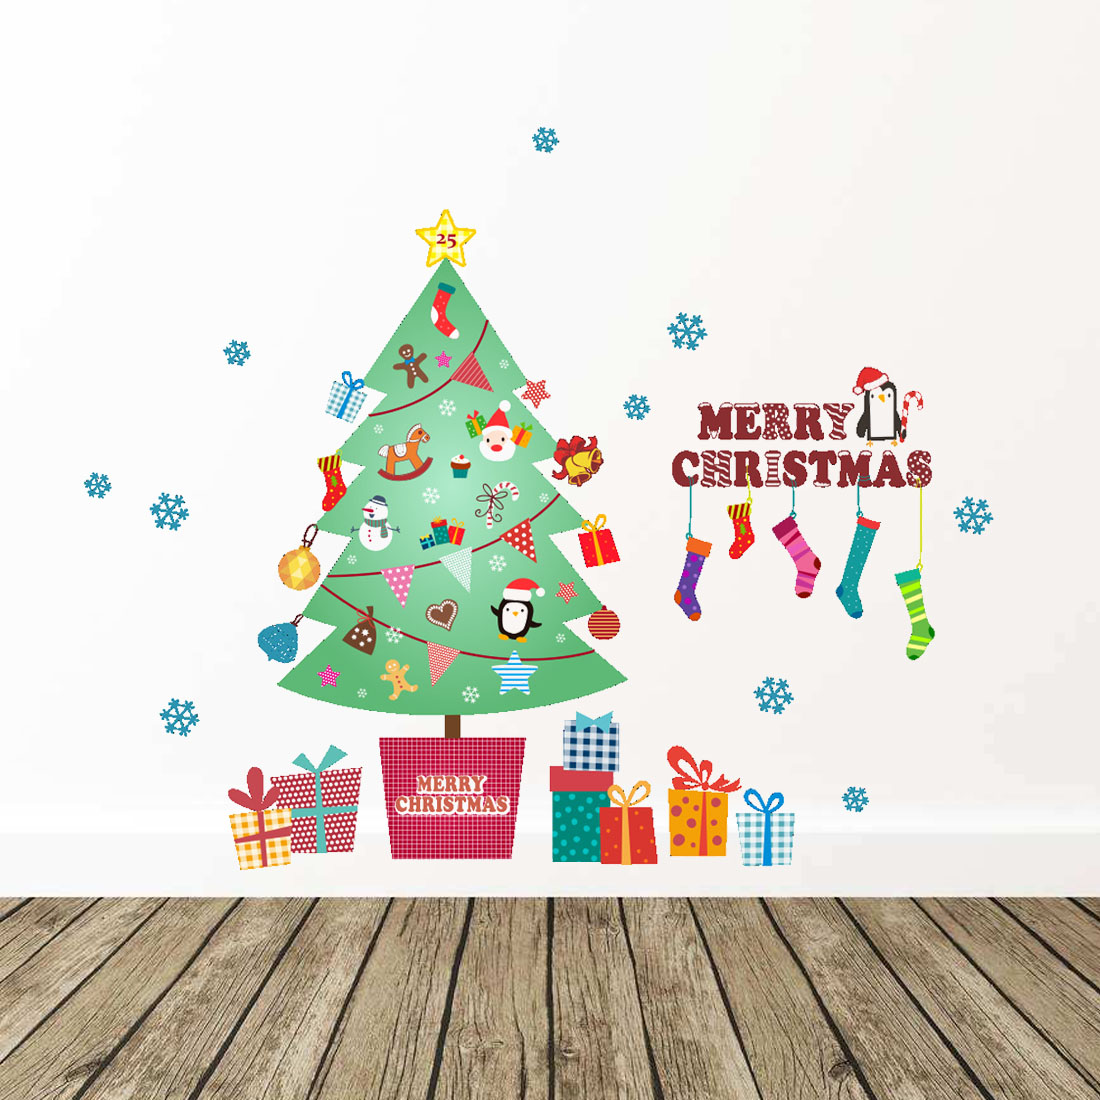 Good xmas tree wall stickers 2018 happy new year merry christmas good xmas tree wall stickers 2018 happy new year merry christmas wall sticker xmas home shop windows decals decor in wall stickers from home garden on amipublicfo Choice Image